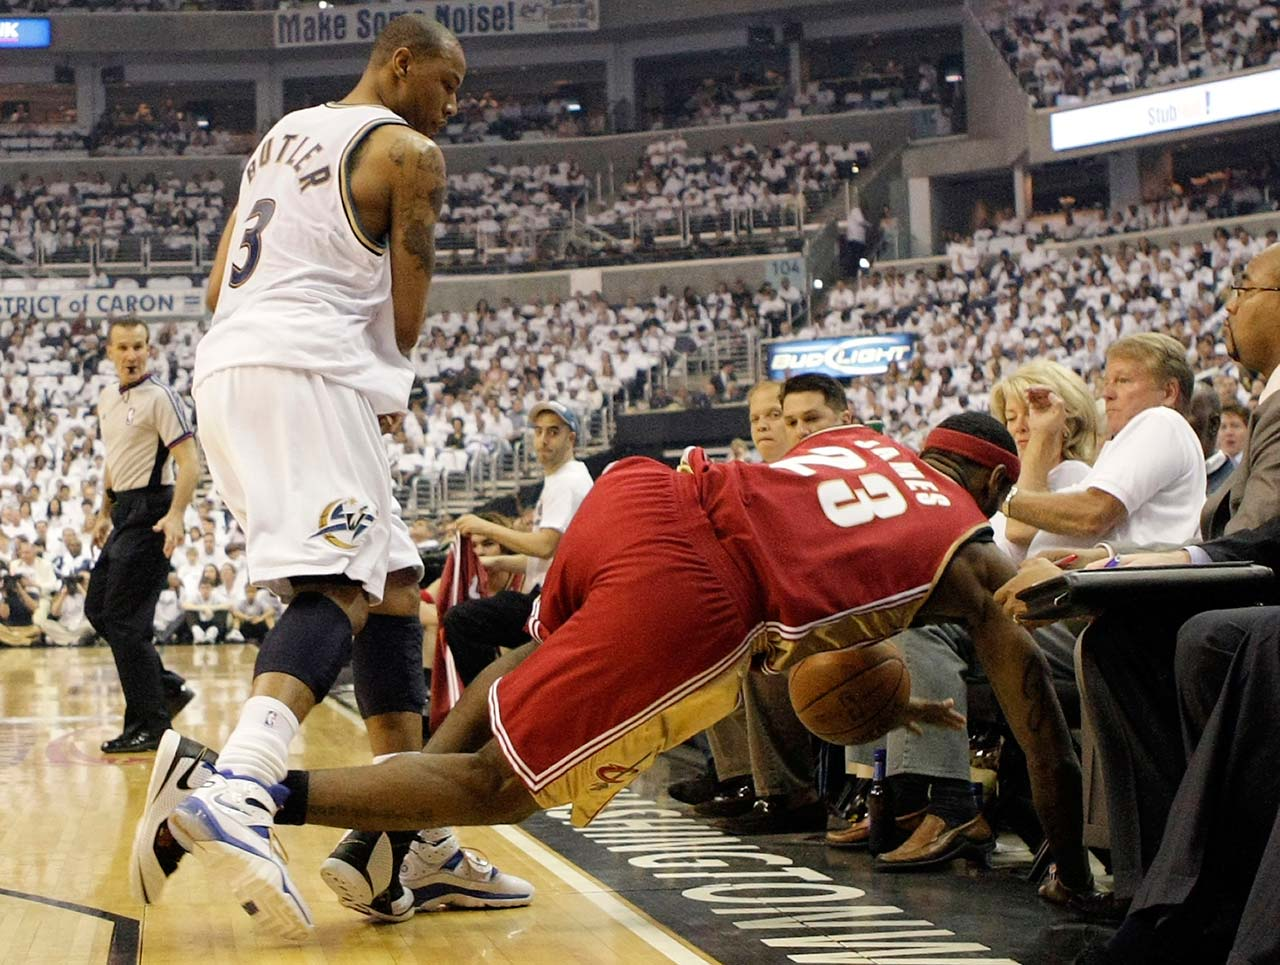 LeBron James is pushed out-of-bounds by Washington Wizards' Caron Butler during a first-round playoff game on May 2, 2008, in Washington.